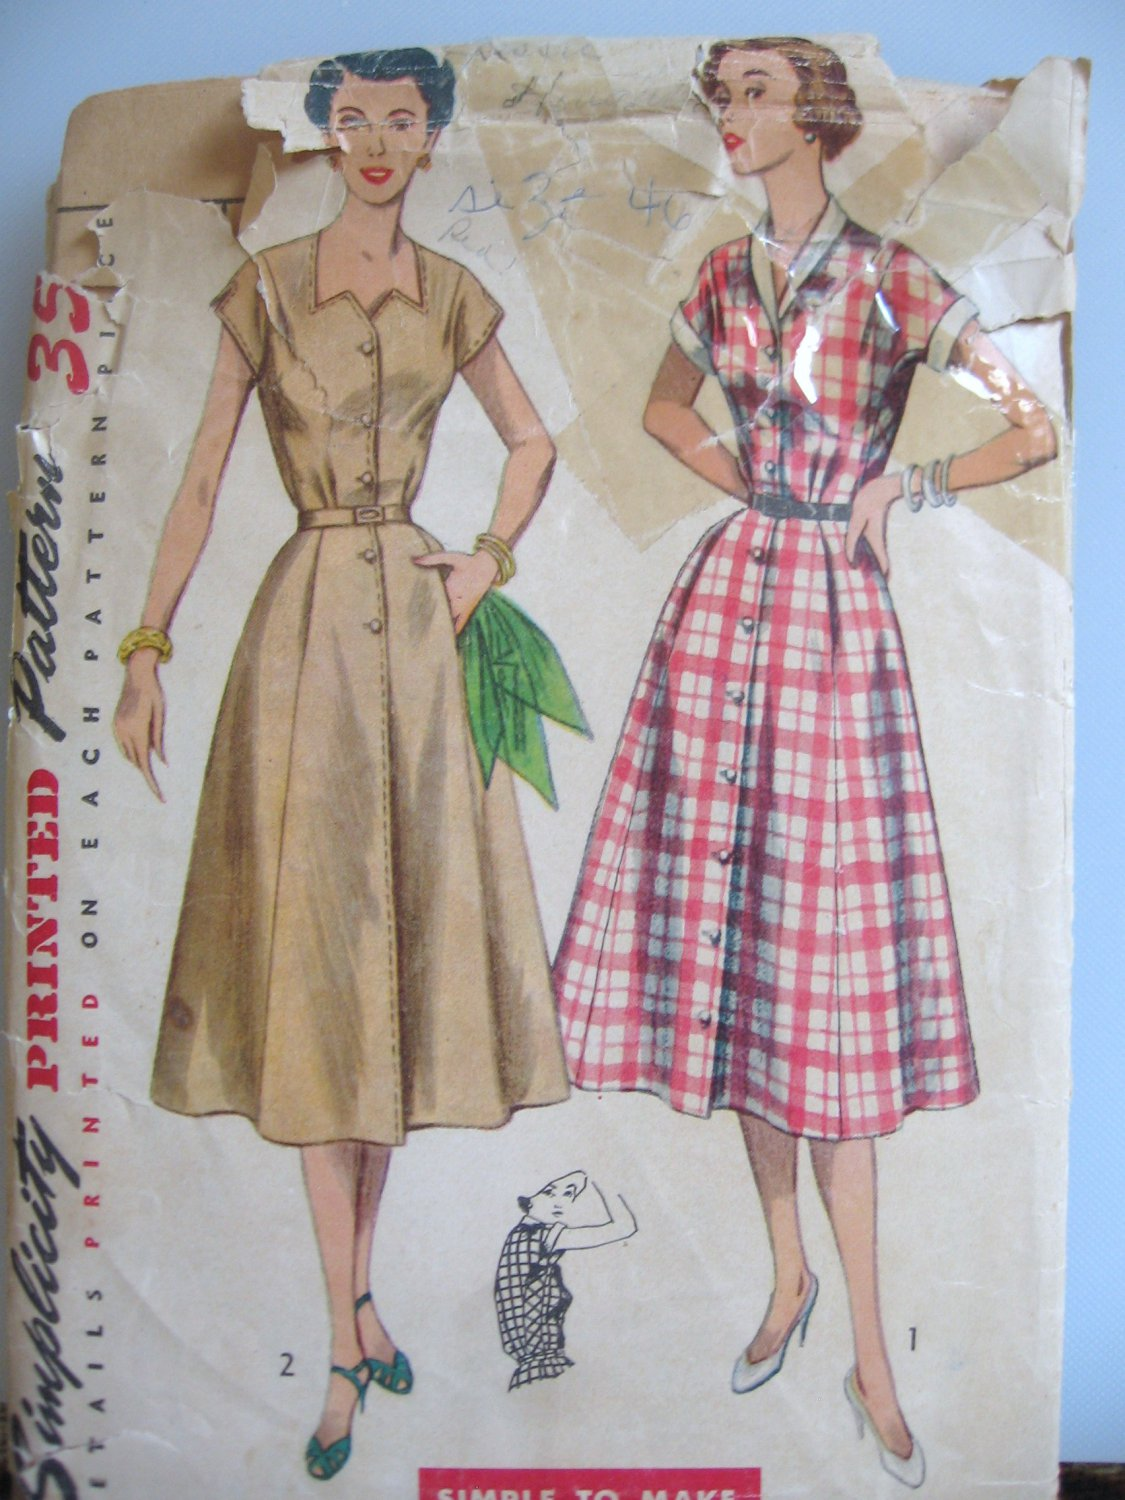 Vintage Simplicity 4260 Front Button One Piece Dress Sewing Pattern sz 46